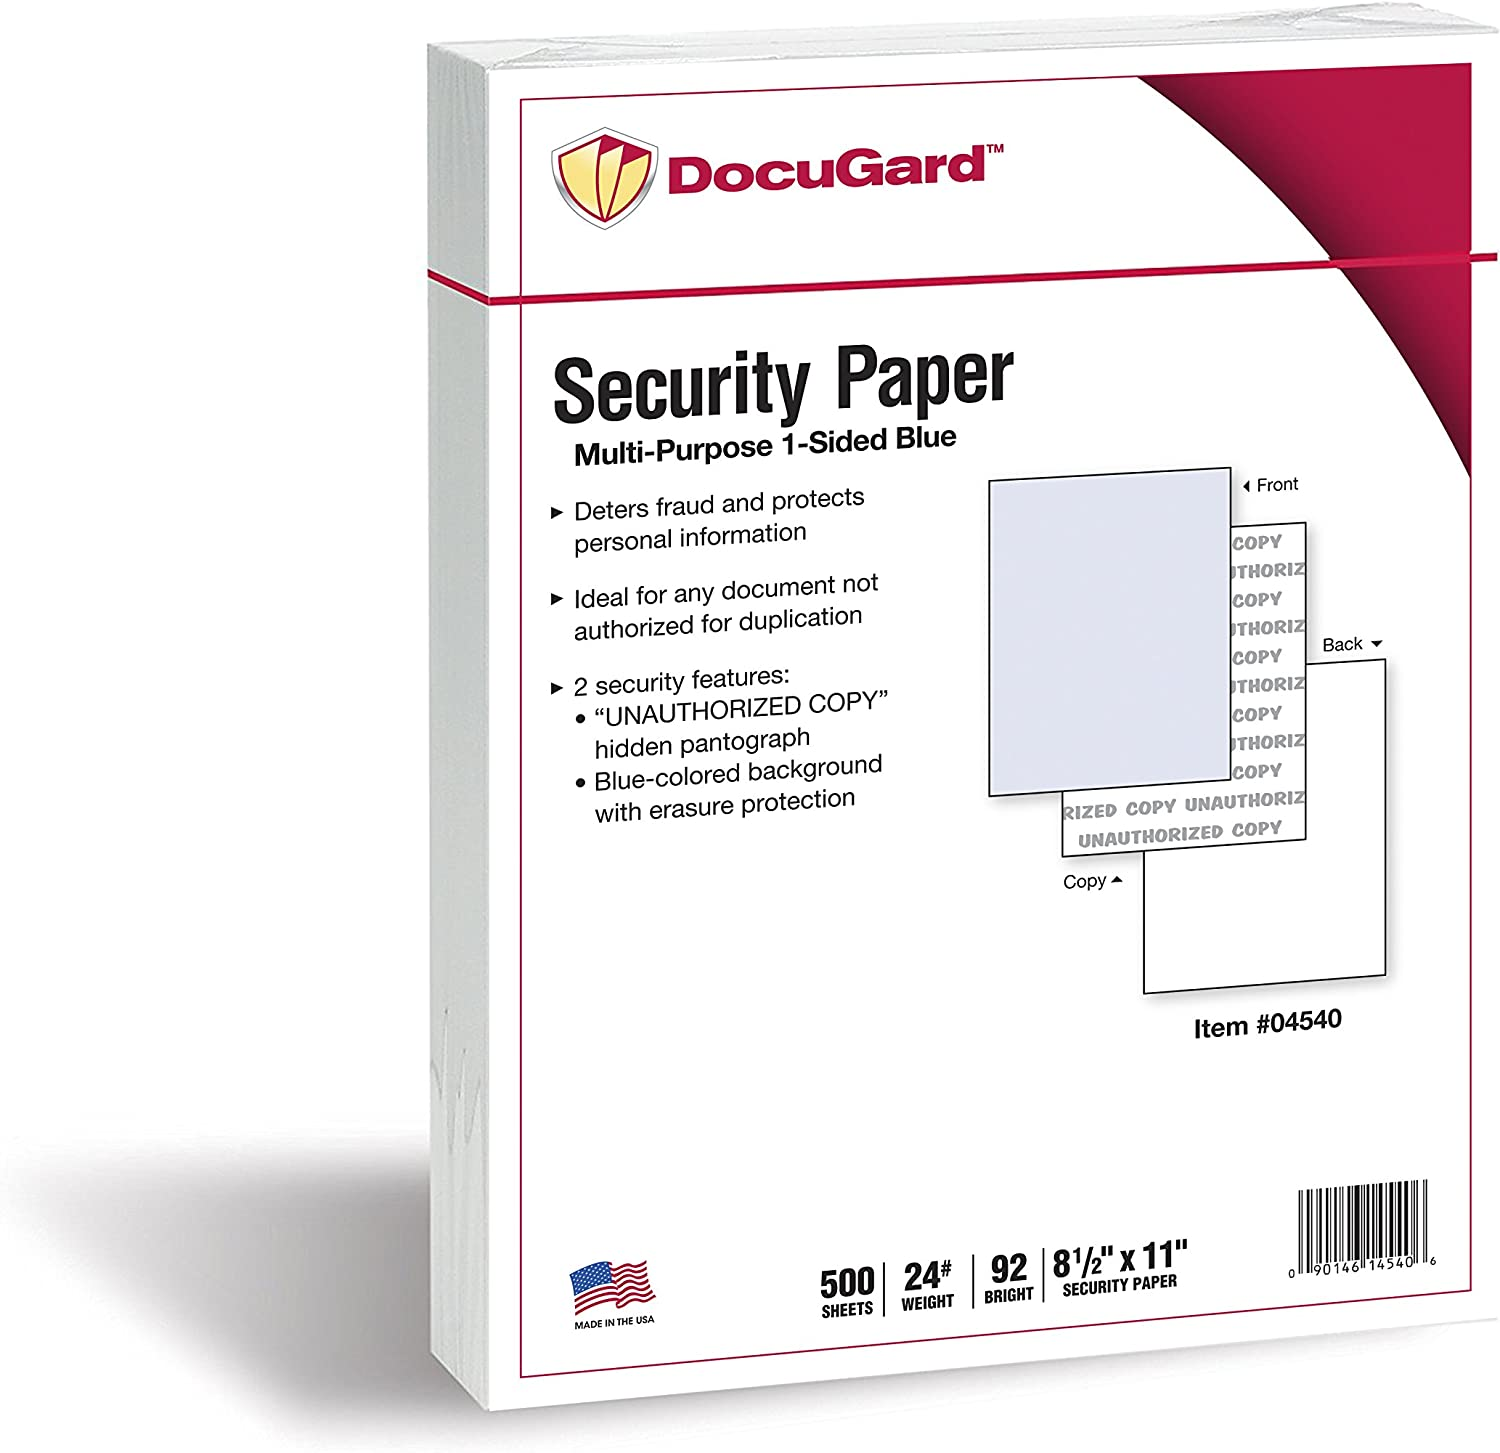 Cheap bargain DocuGard Standard All items free shipping Blue Multi-Purpose Security 2 Features Paper